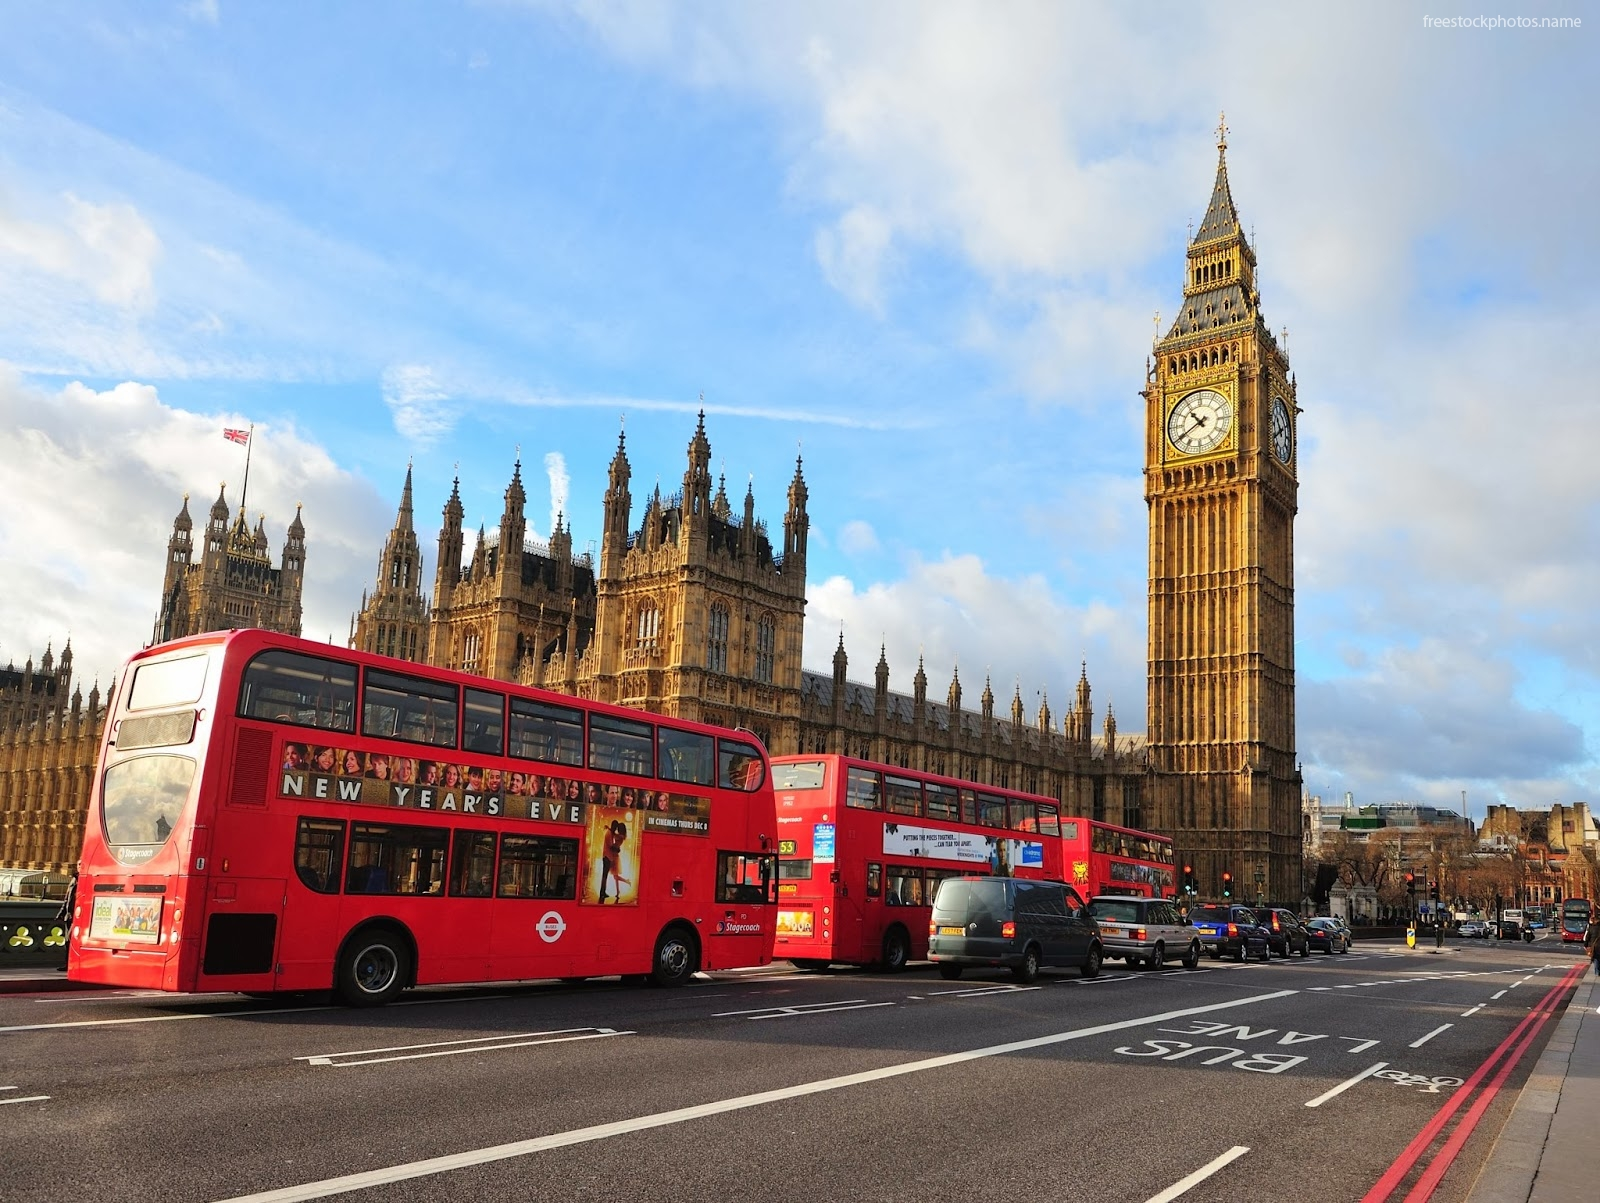 tourist-places-in-london-4028